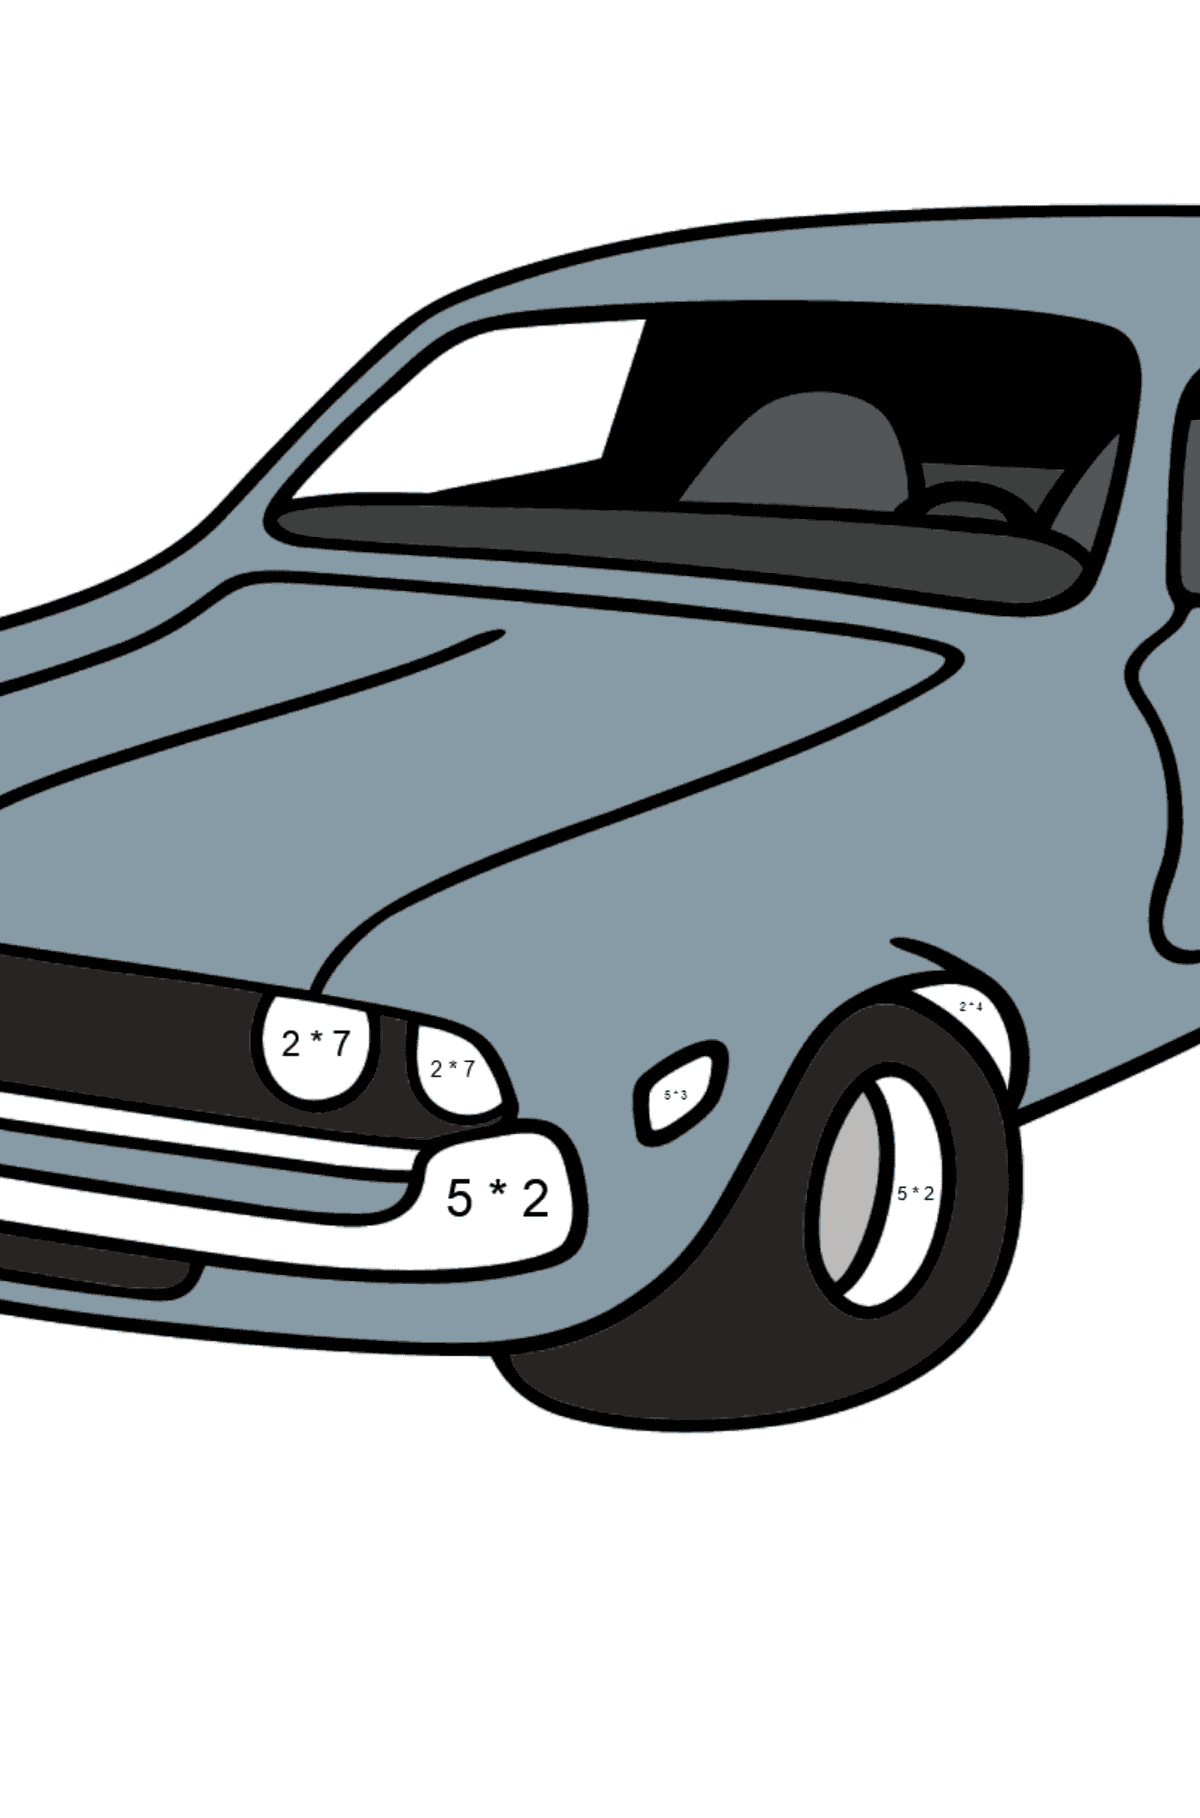 Chevrolet gray car coloring page - Math Coloring - Multiplication for Kids